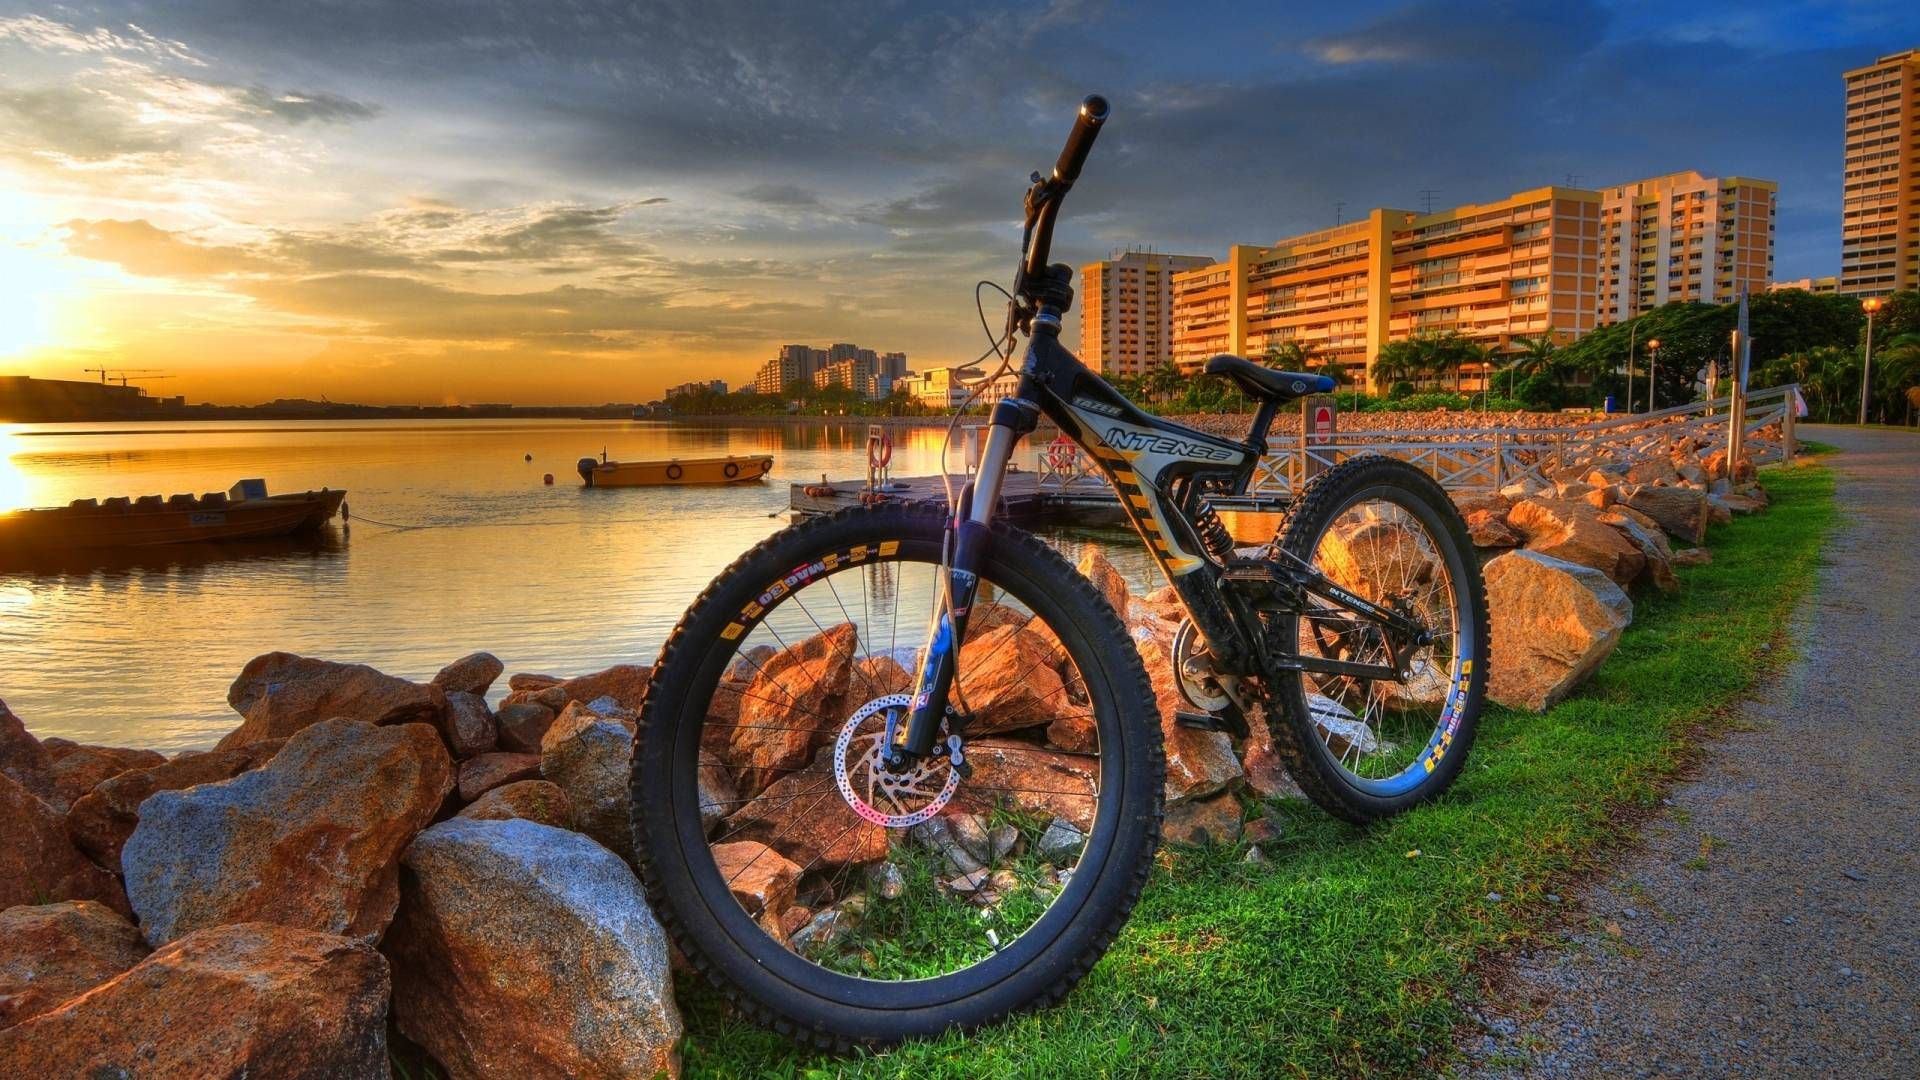 Pin By Buu Dang On Iphone 6s Plus Wallpapers Must To Have Bicycle